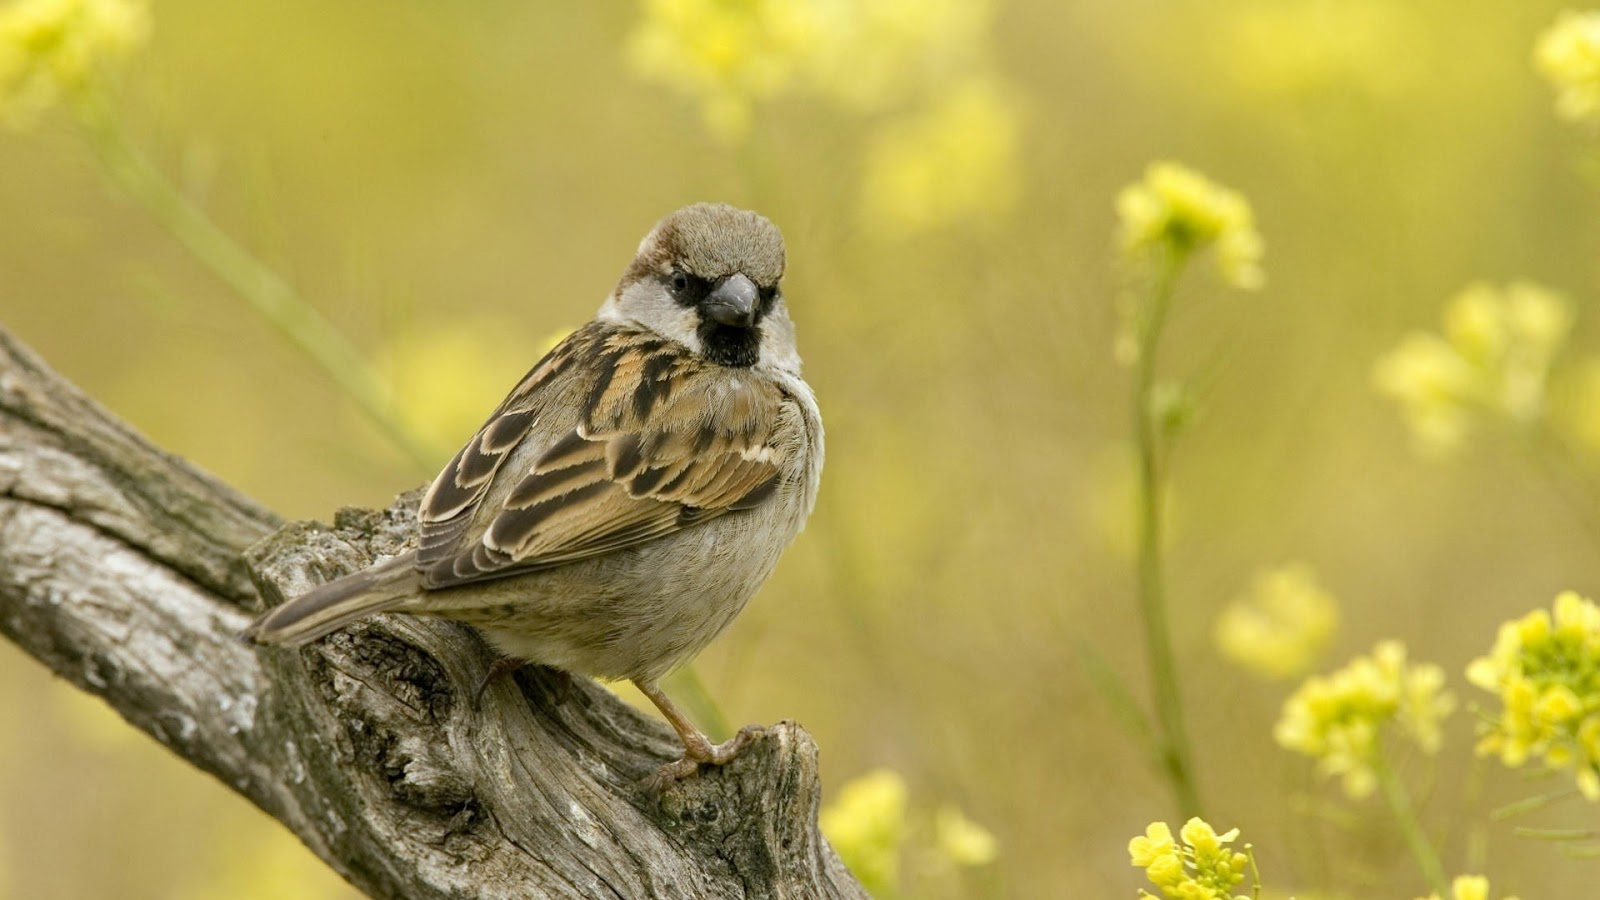 sparrows wallpapers download free bird images